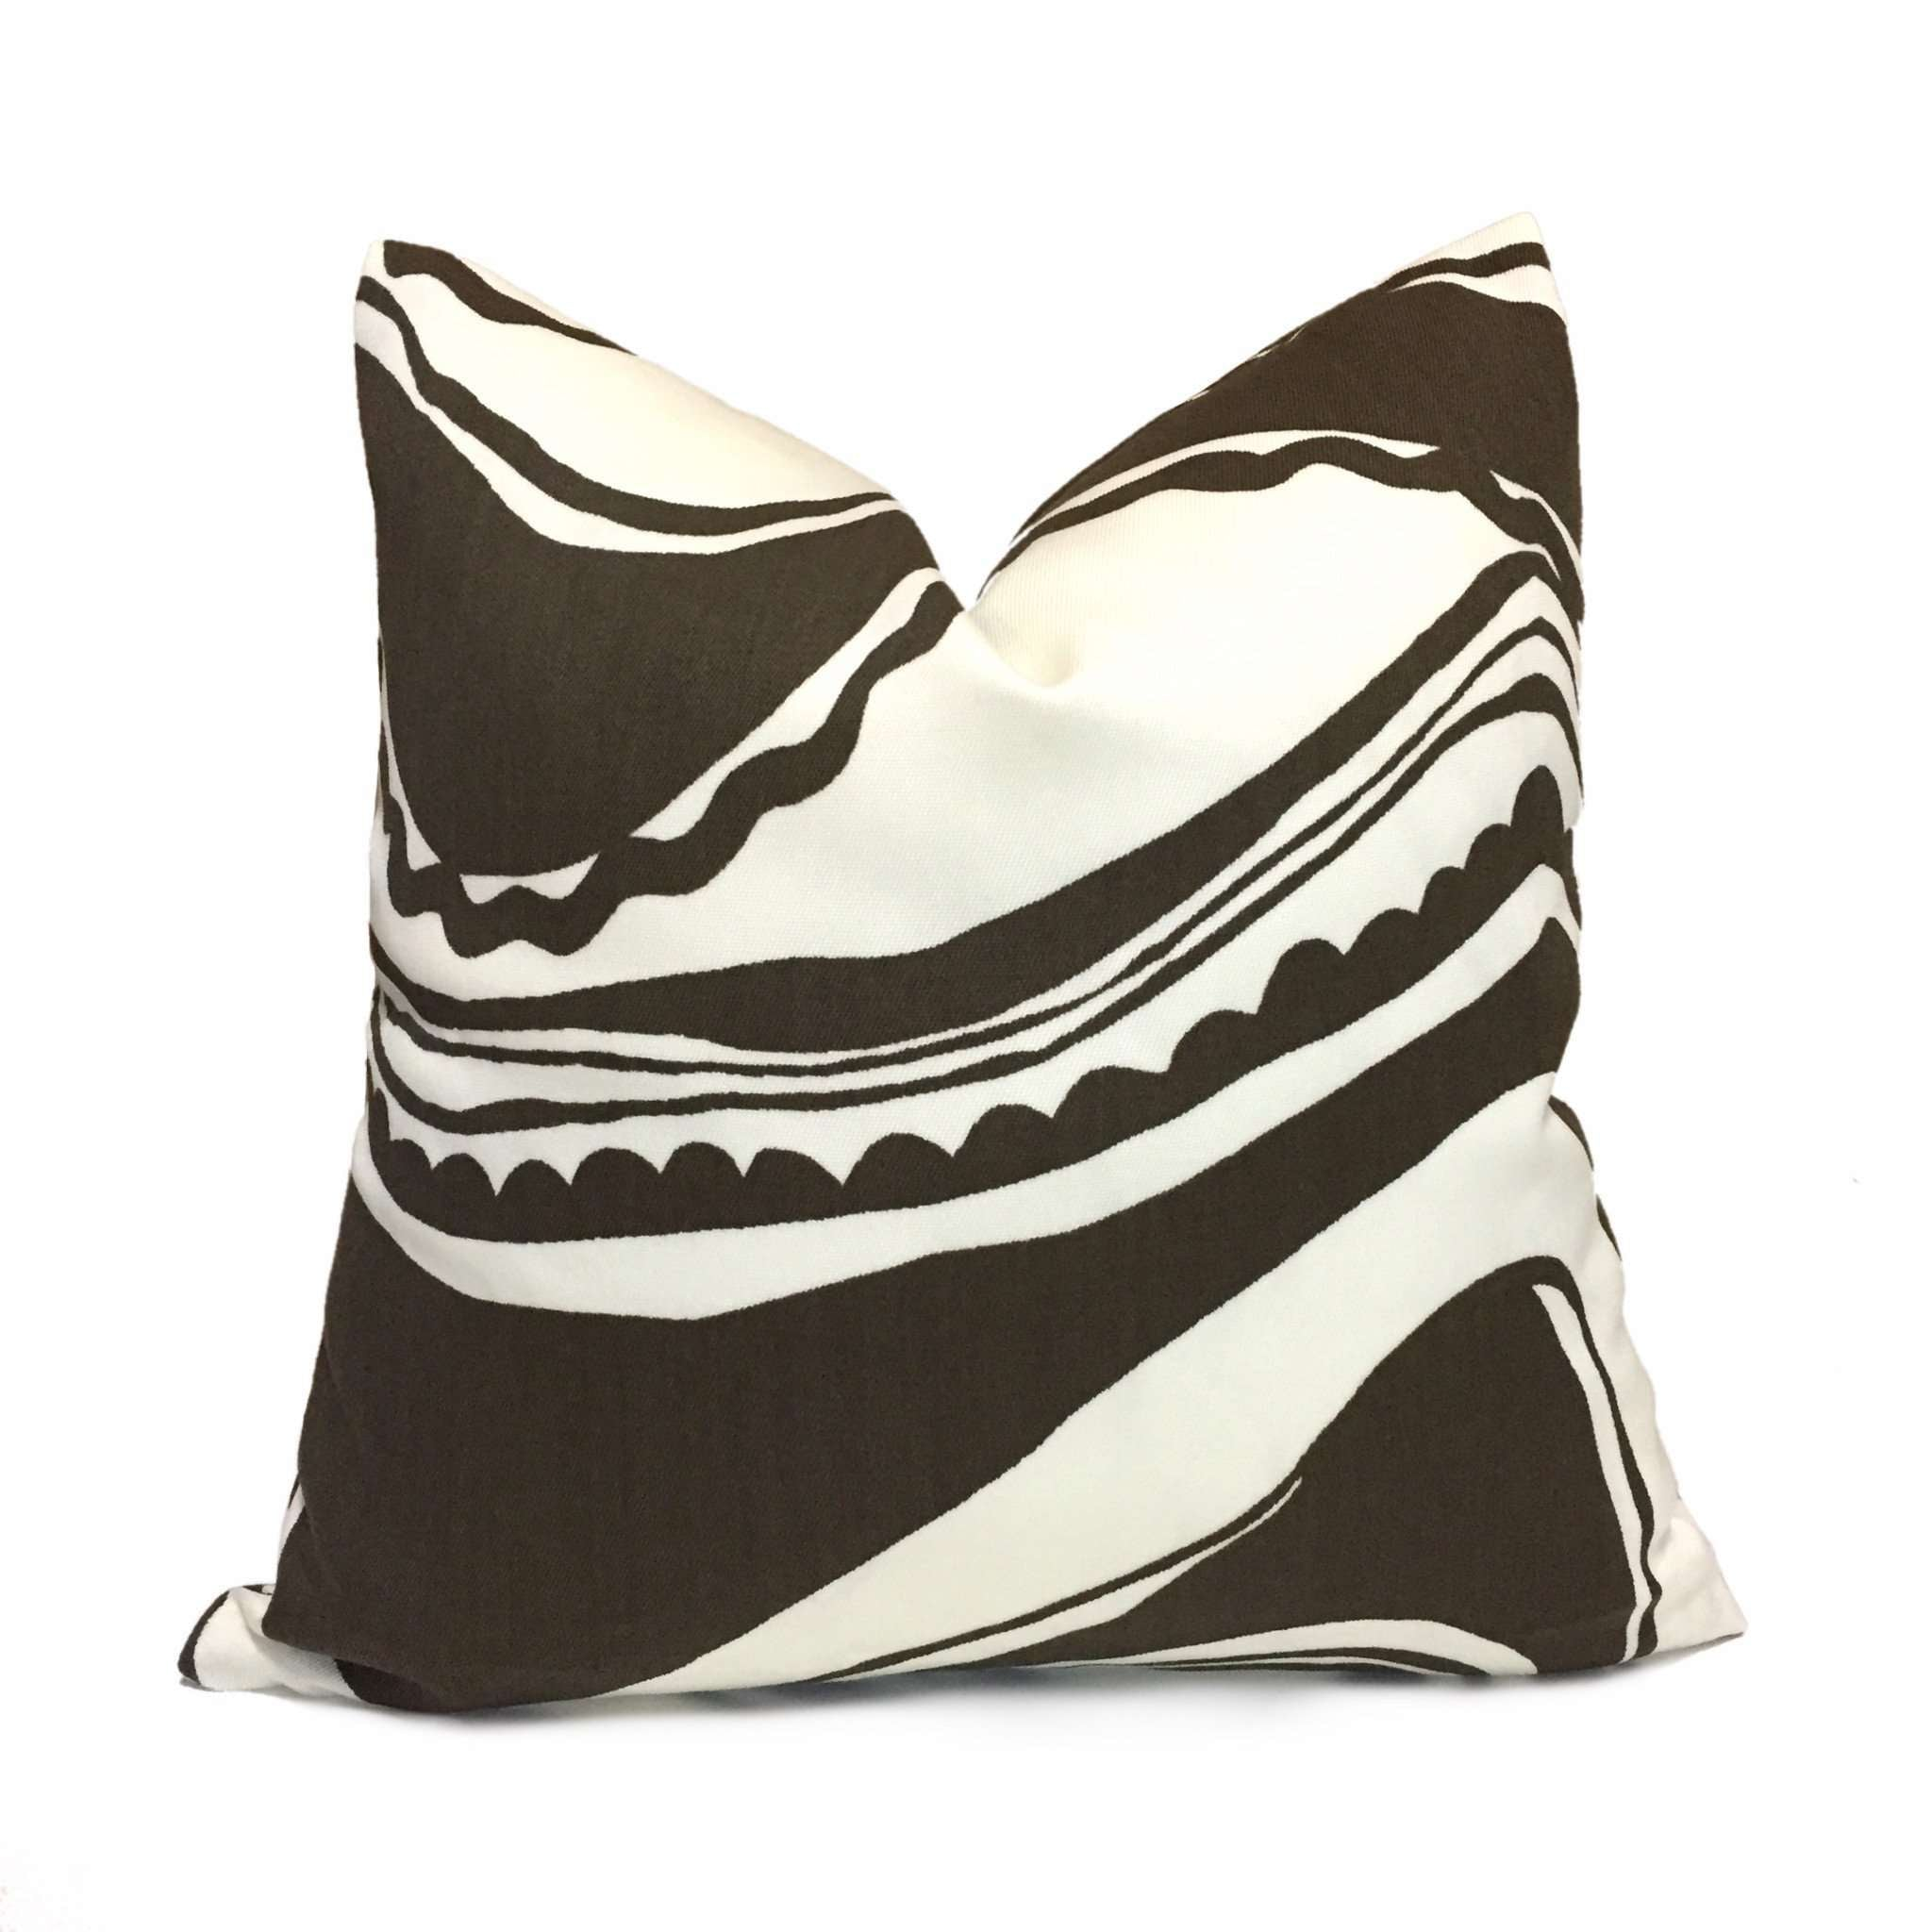 Trina Turk Schumacher Carmel Coastline Tobacco Brown White Indoor Outdoor Pillow Cover by Aloriam